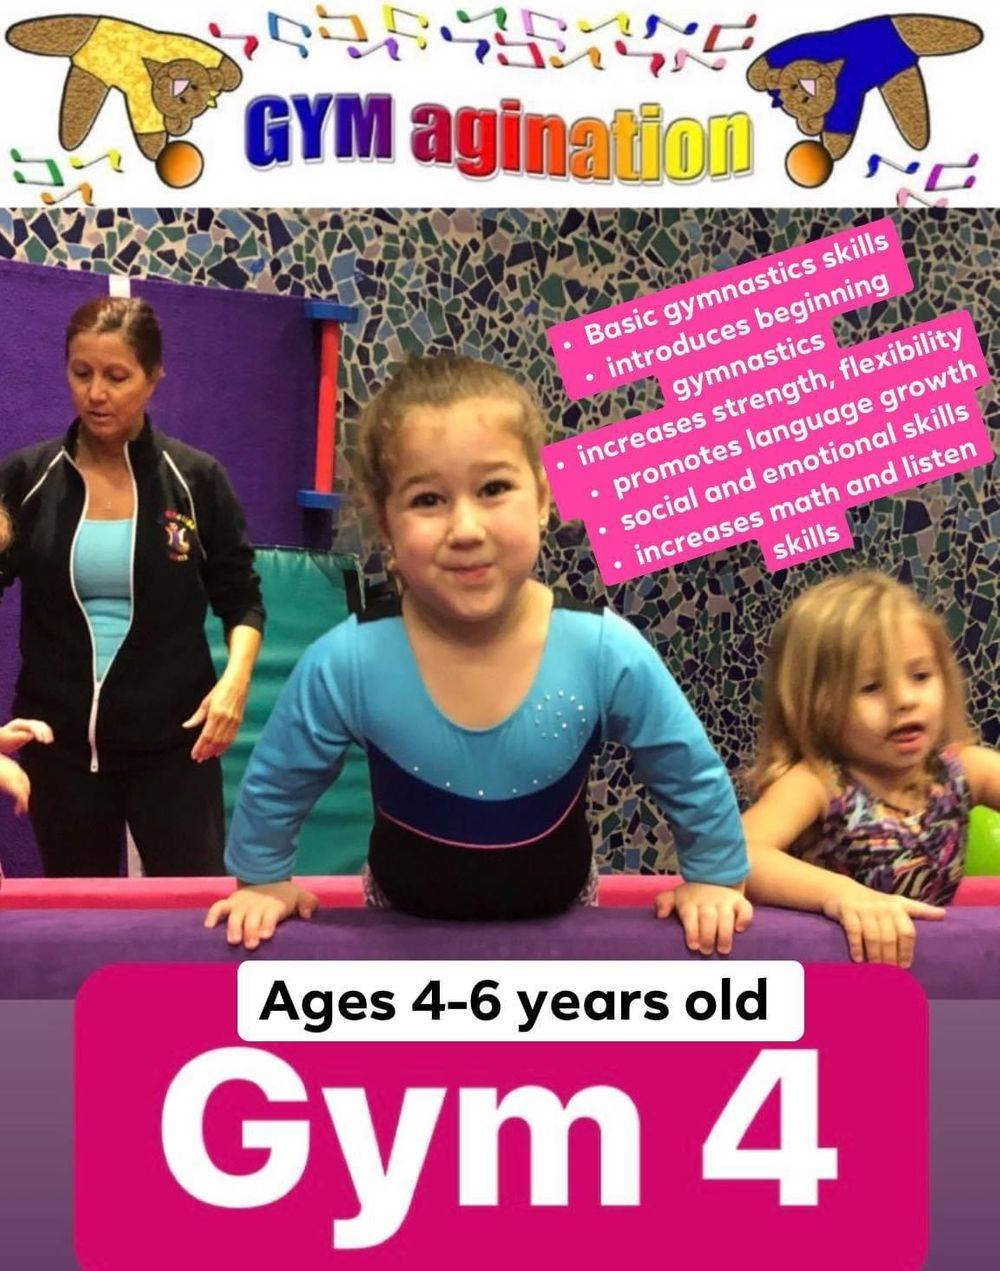 Gym 4 4-6 year olds